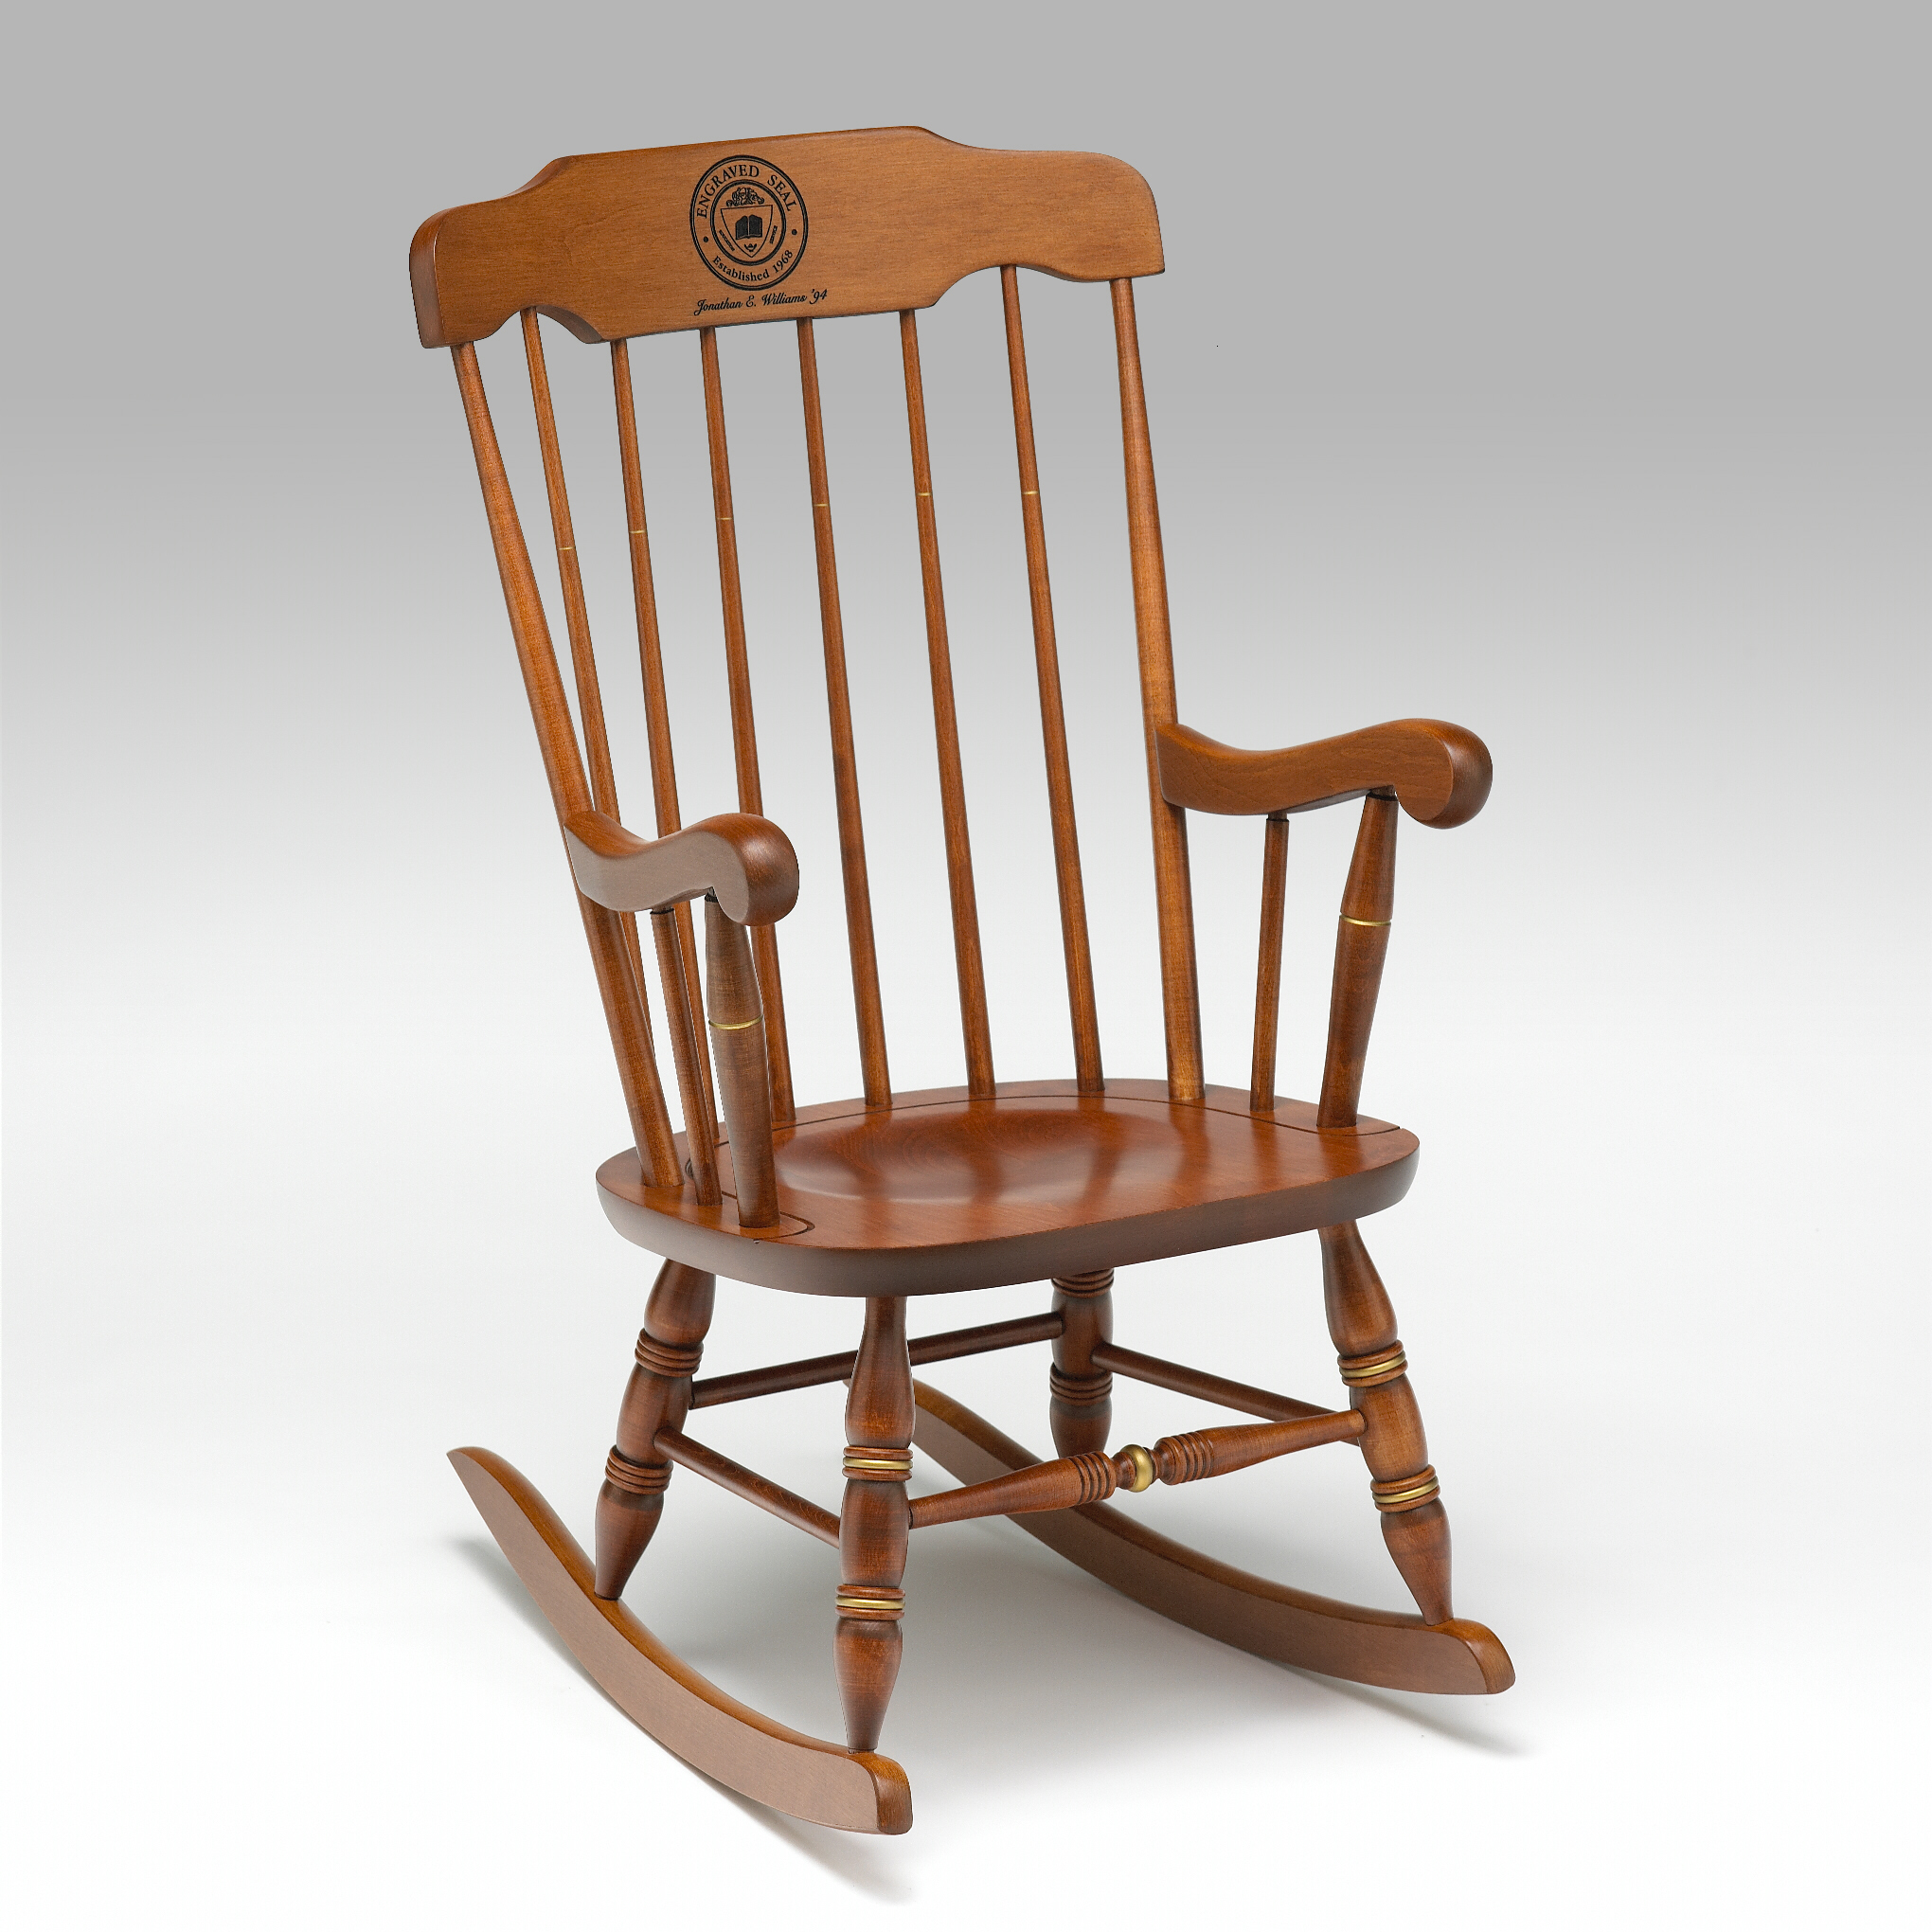 Rocking Chairs Help Me Safely Disassemble A Rocking Chair Furniture Dit